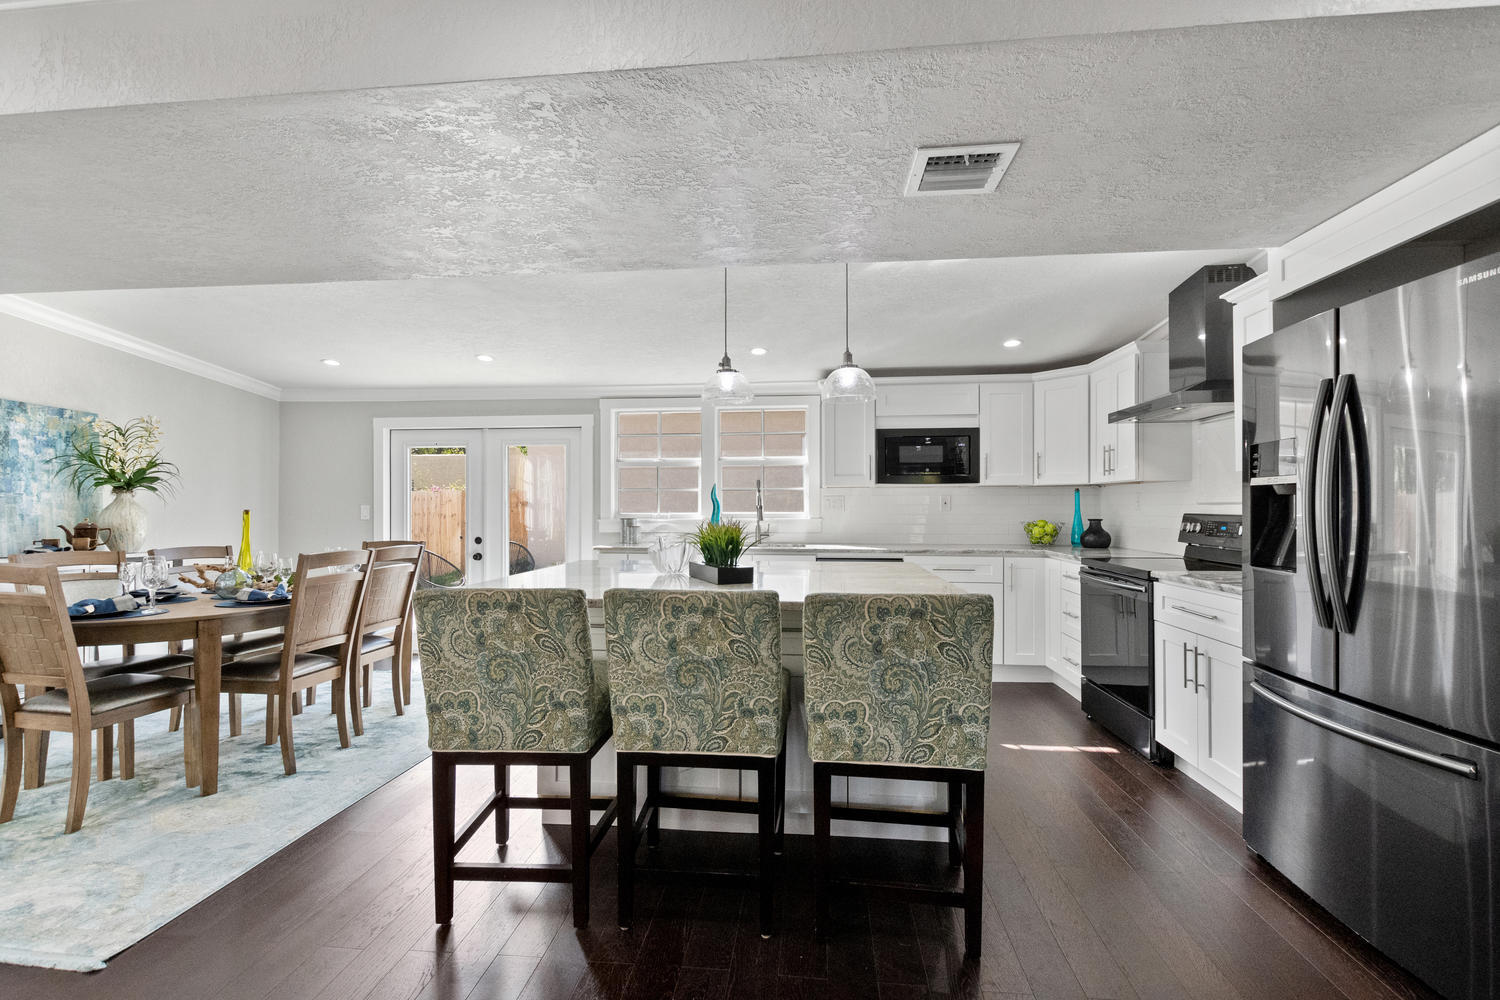 NORTHWOOD WEST PALM BEACH REAL ESTATE